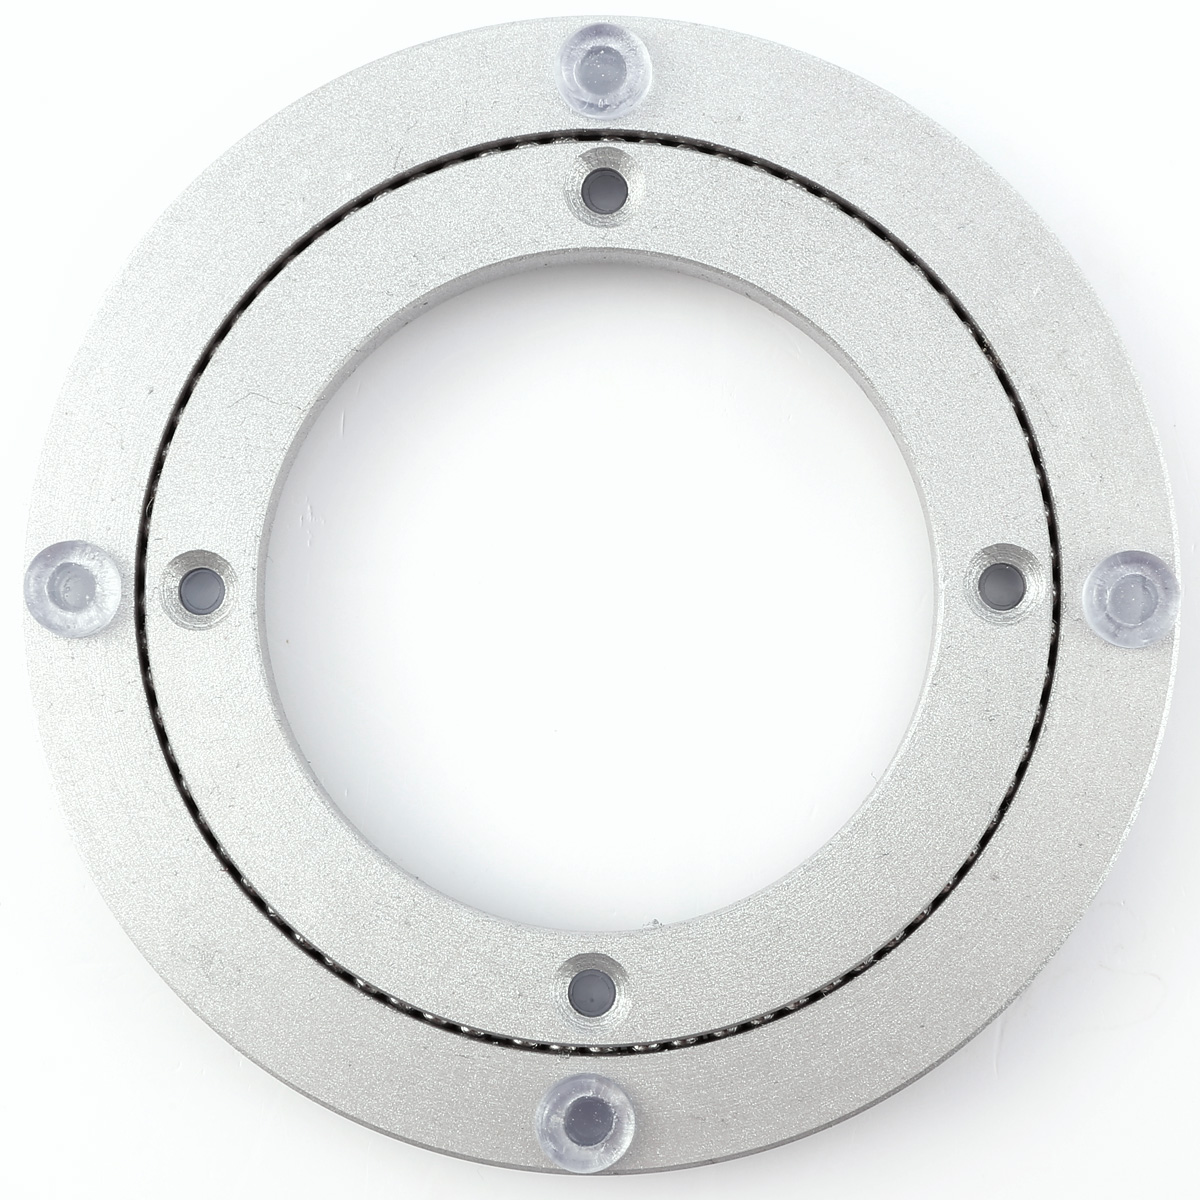 Heavy Duty Metal Lazy Susan Swivel With Ball Bearing